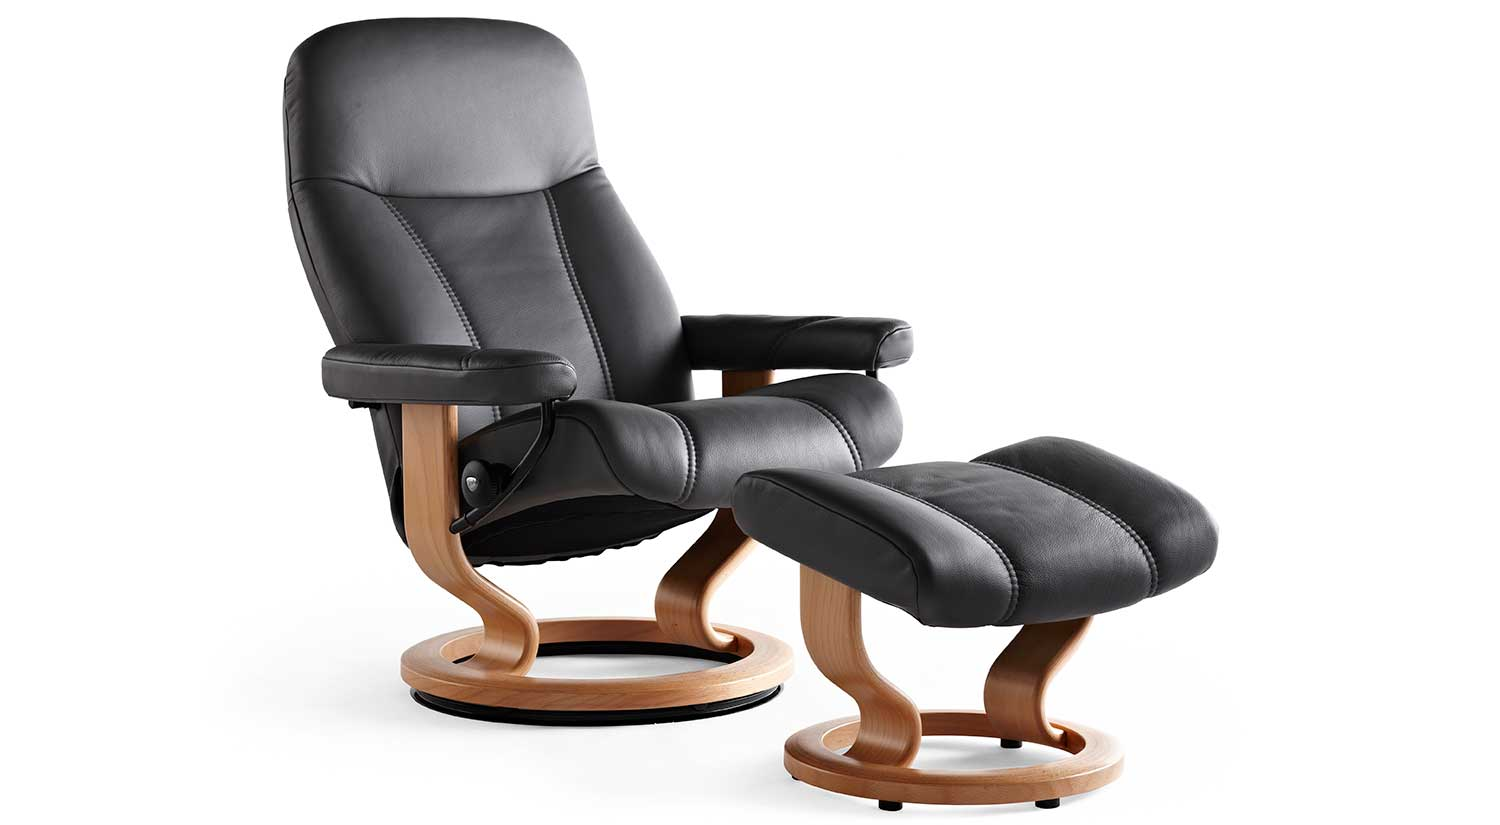 Stressless consul small chair and stool in batick leather - Consul Stressless Chair And Otto Consul Stressless Chair And Otto